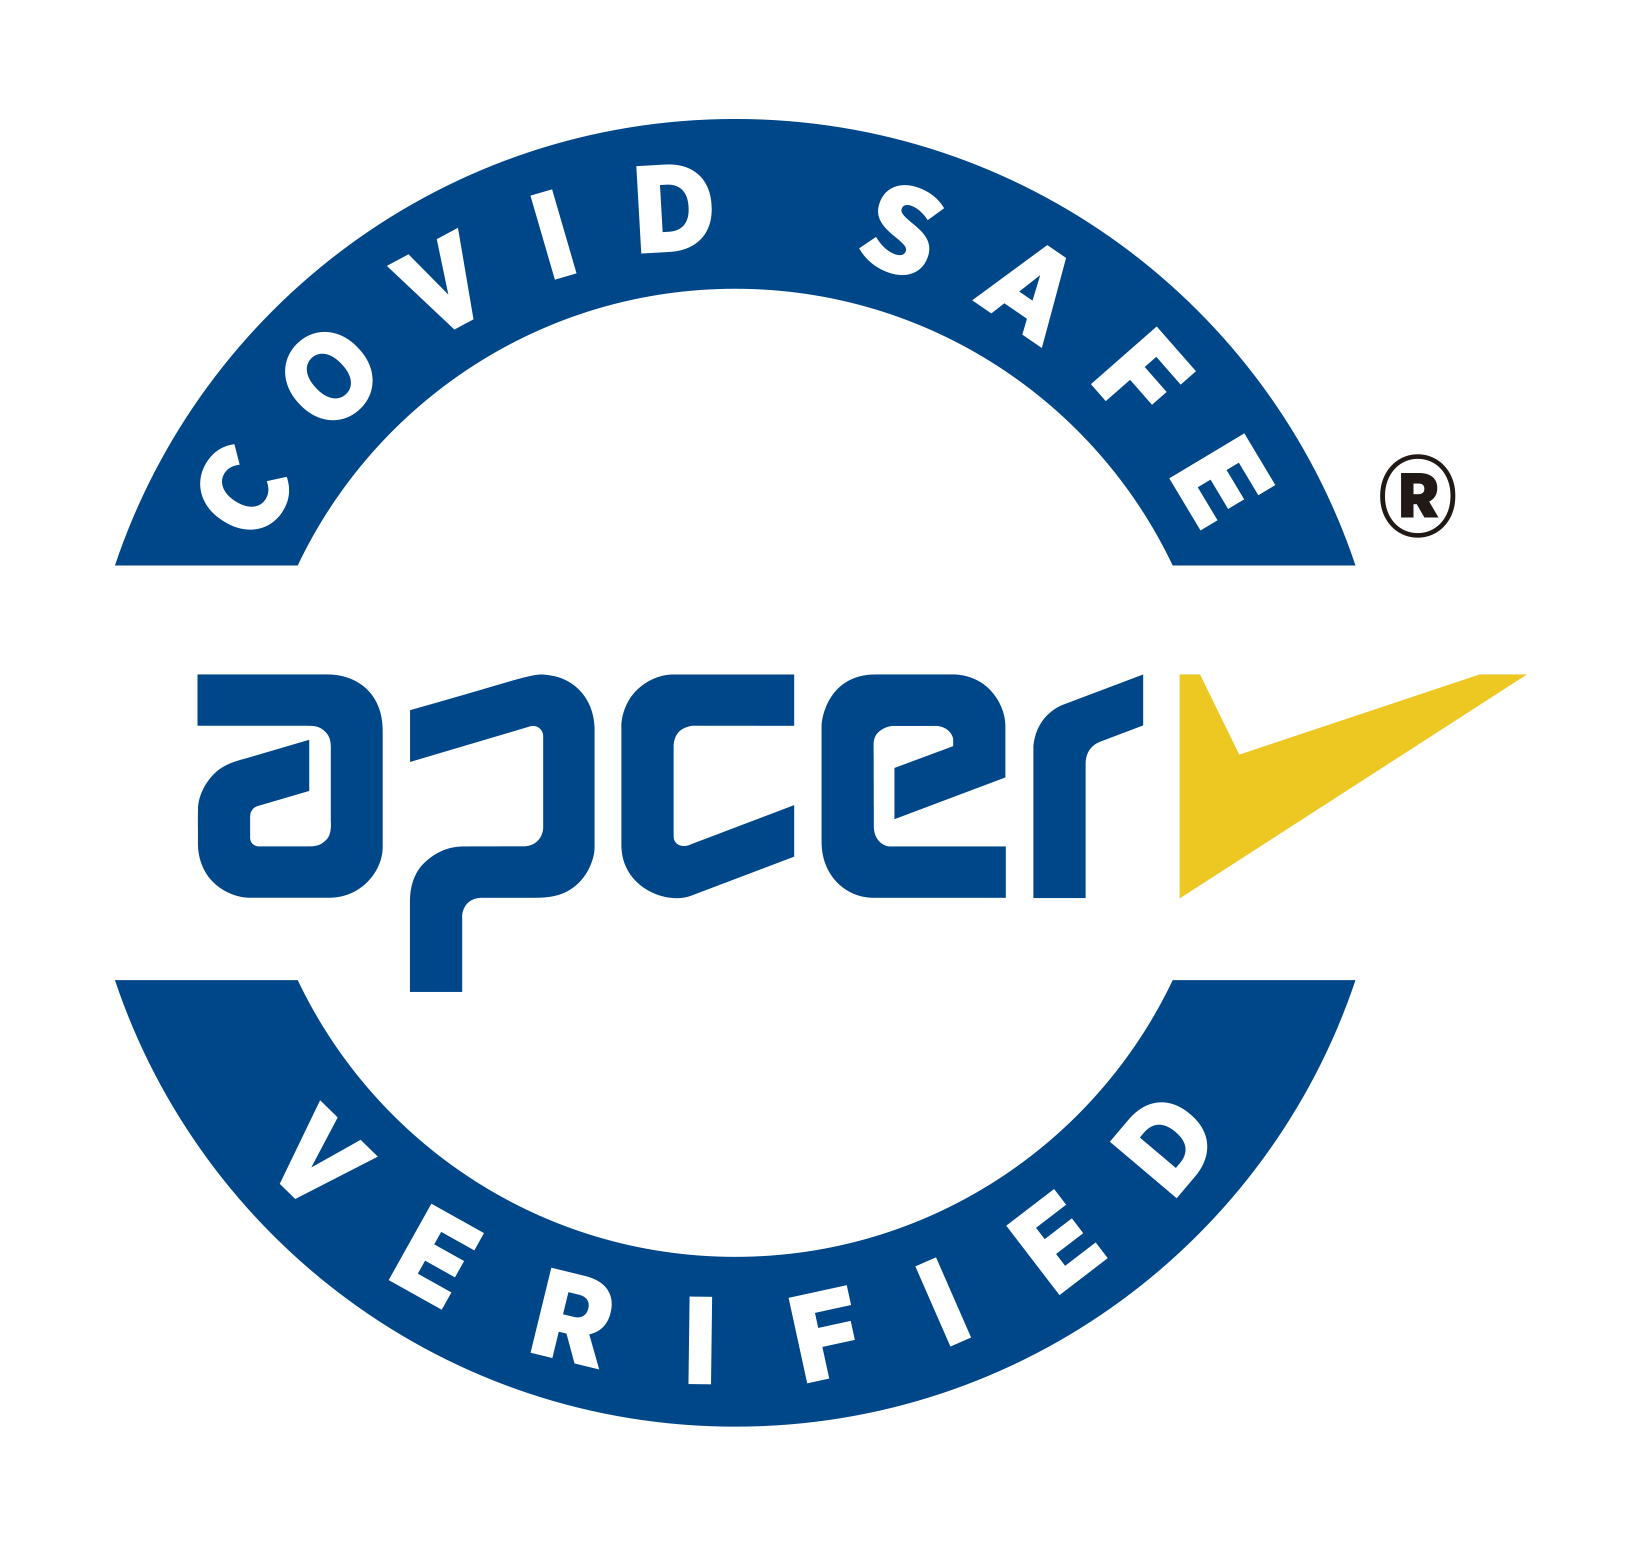 COVID SAFE VERIFIED COR